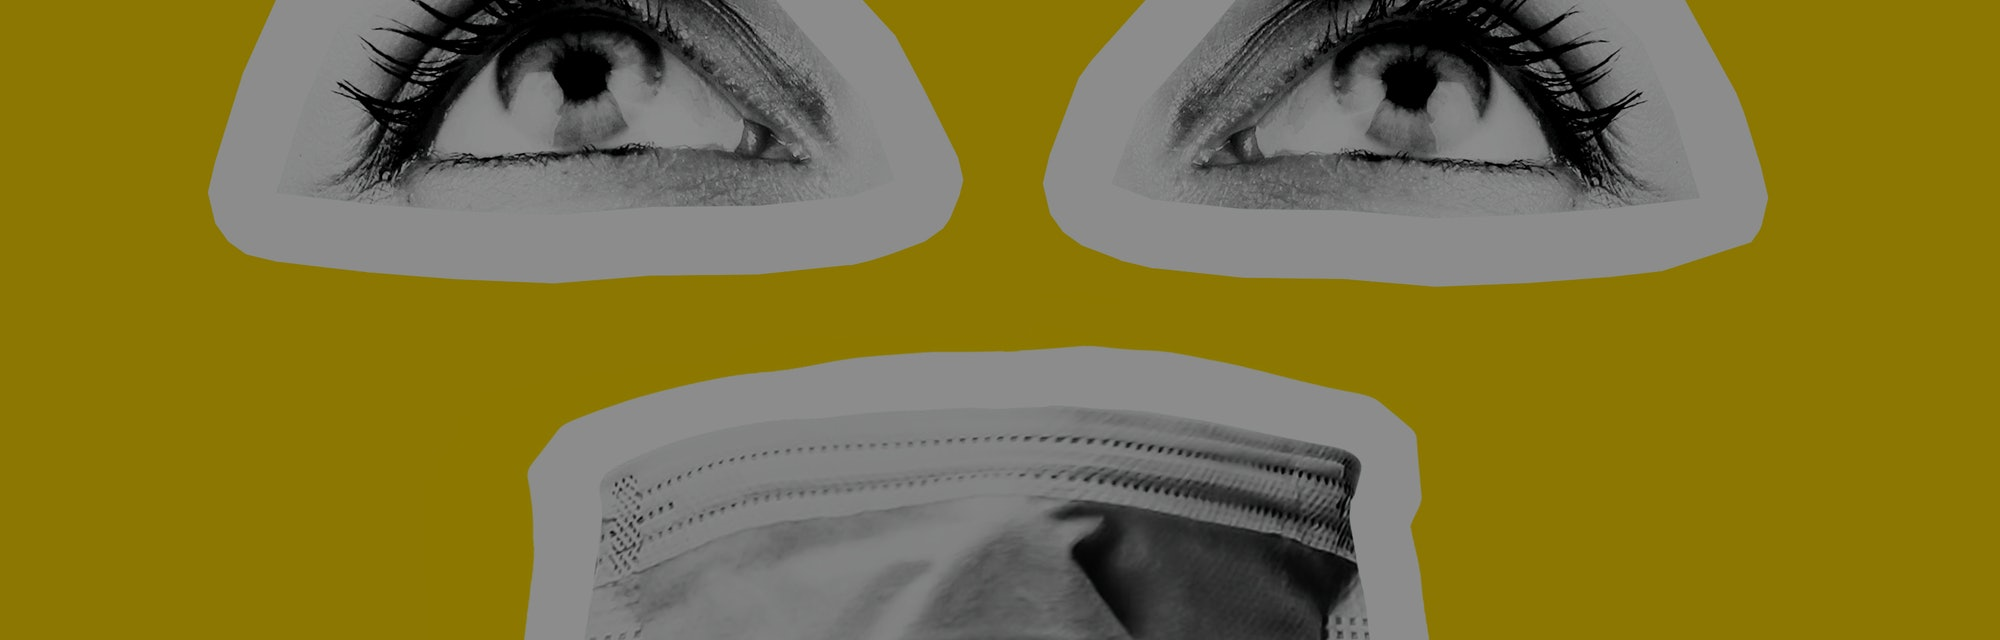 Medical mask protection against coronavirus, eyes and mouth close-up. The background is yellow. The eyes and masks are black and white. Mask from infection. Modern art collage, yellow background.